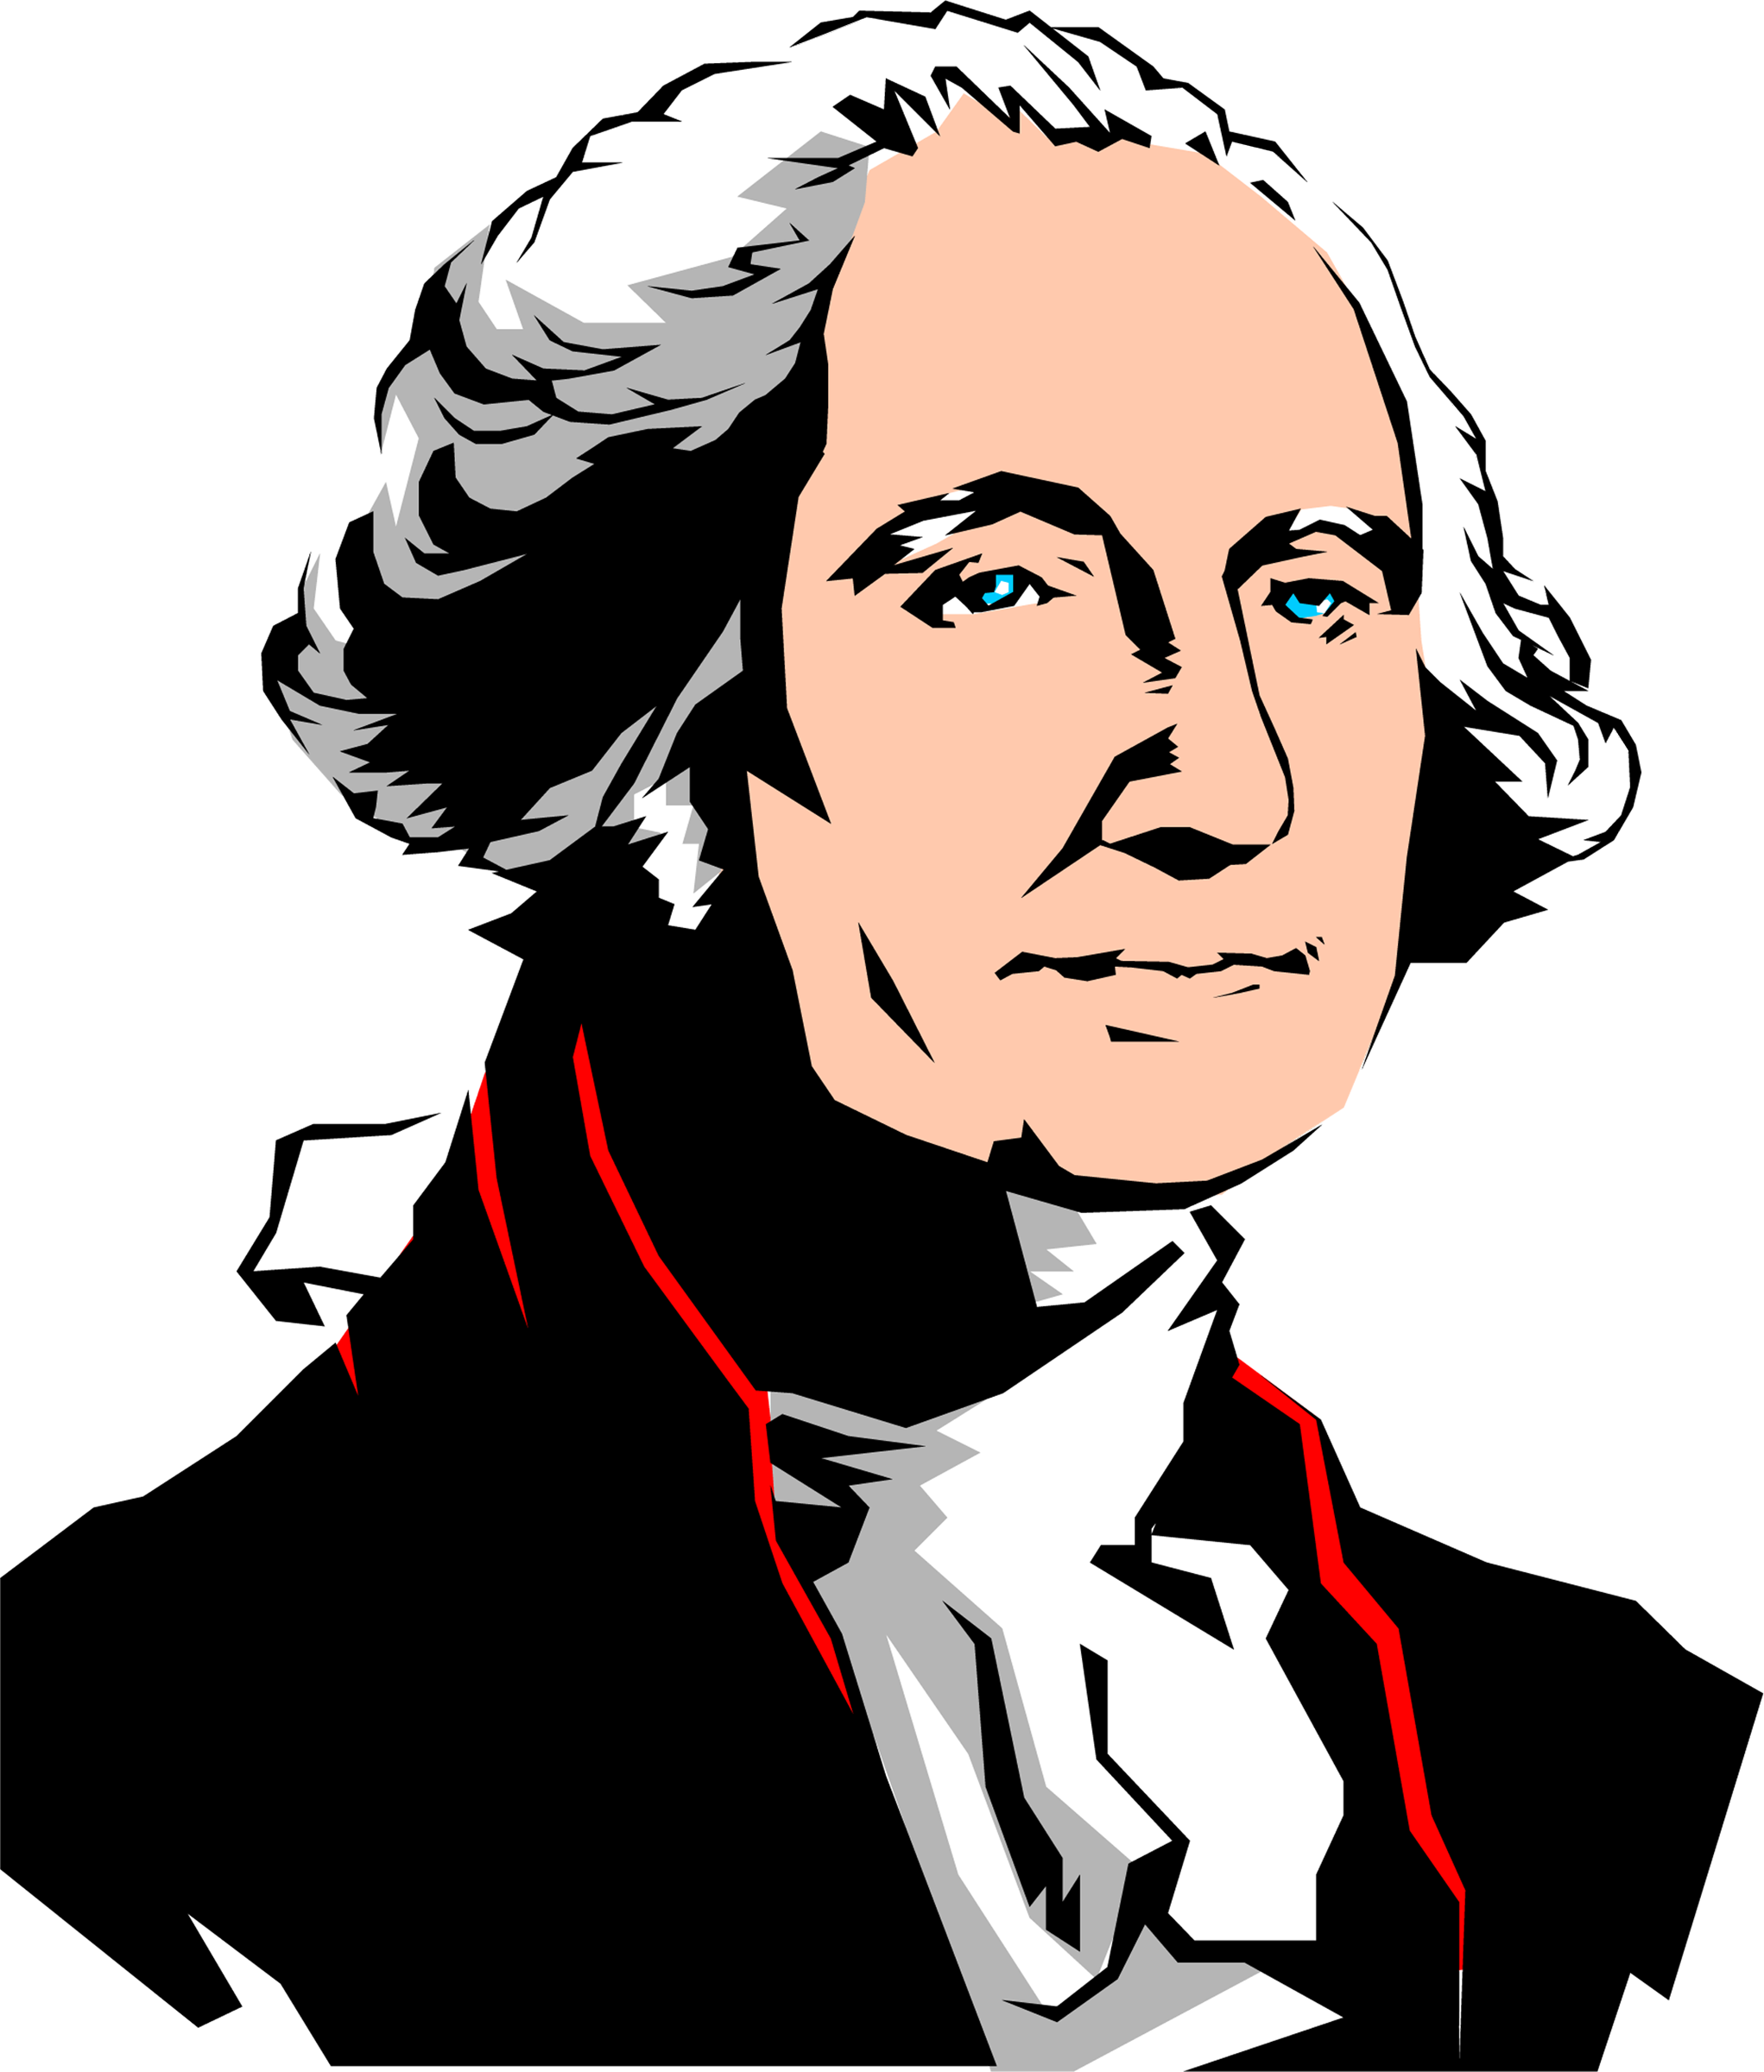 1st Us President George Washington Pinterest Mes Art Tech Kids Learn Circuitry From Blobz And Basic Programming First American Commander Of The Continental Army Constitutional Convention Gentleman Planter